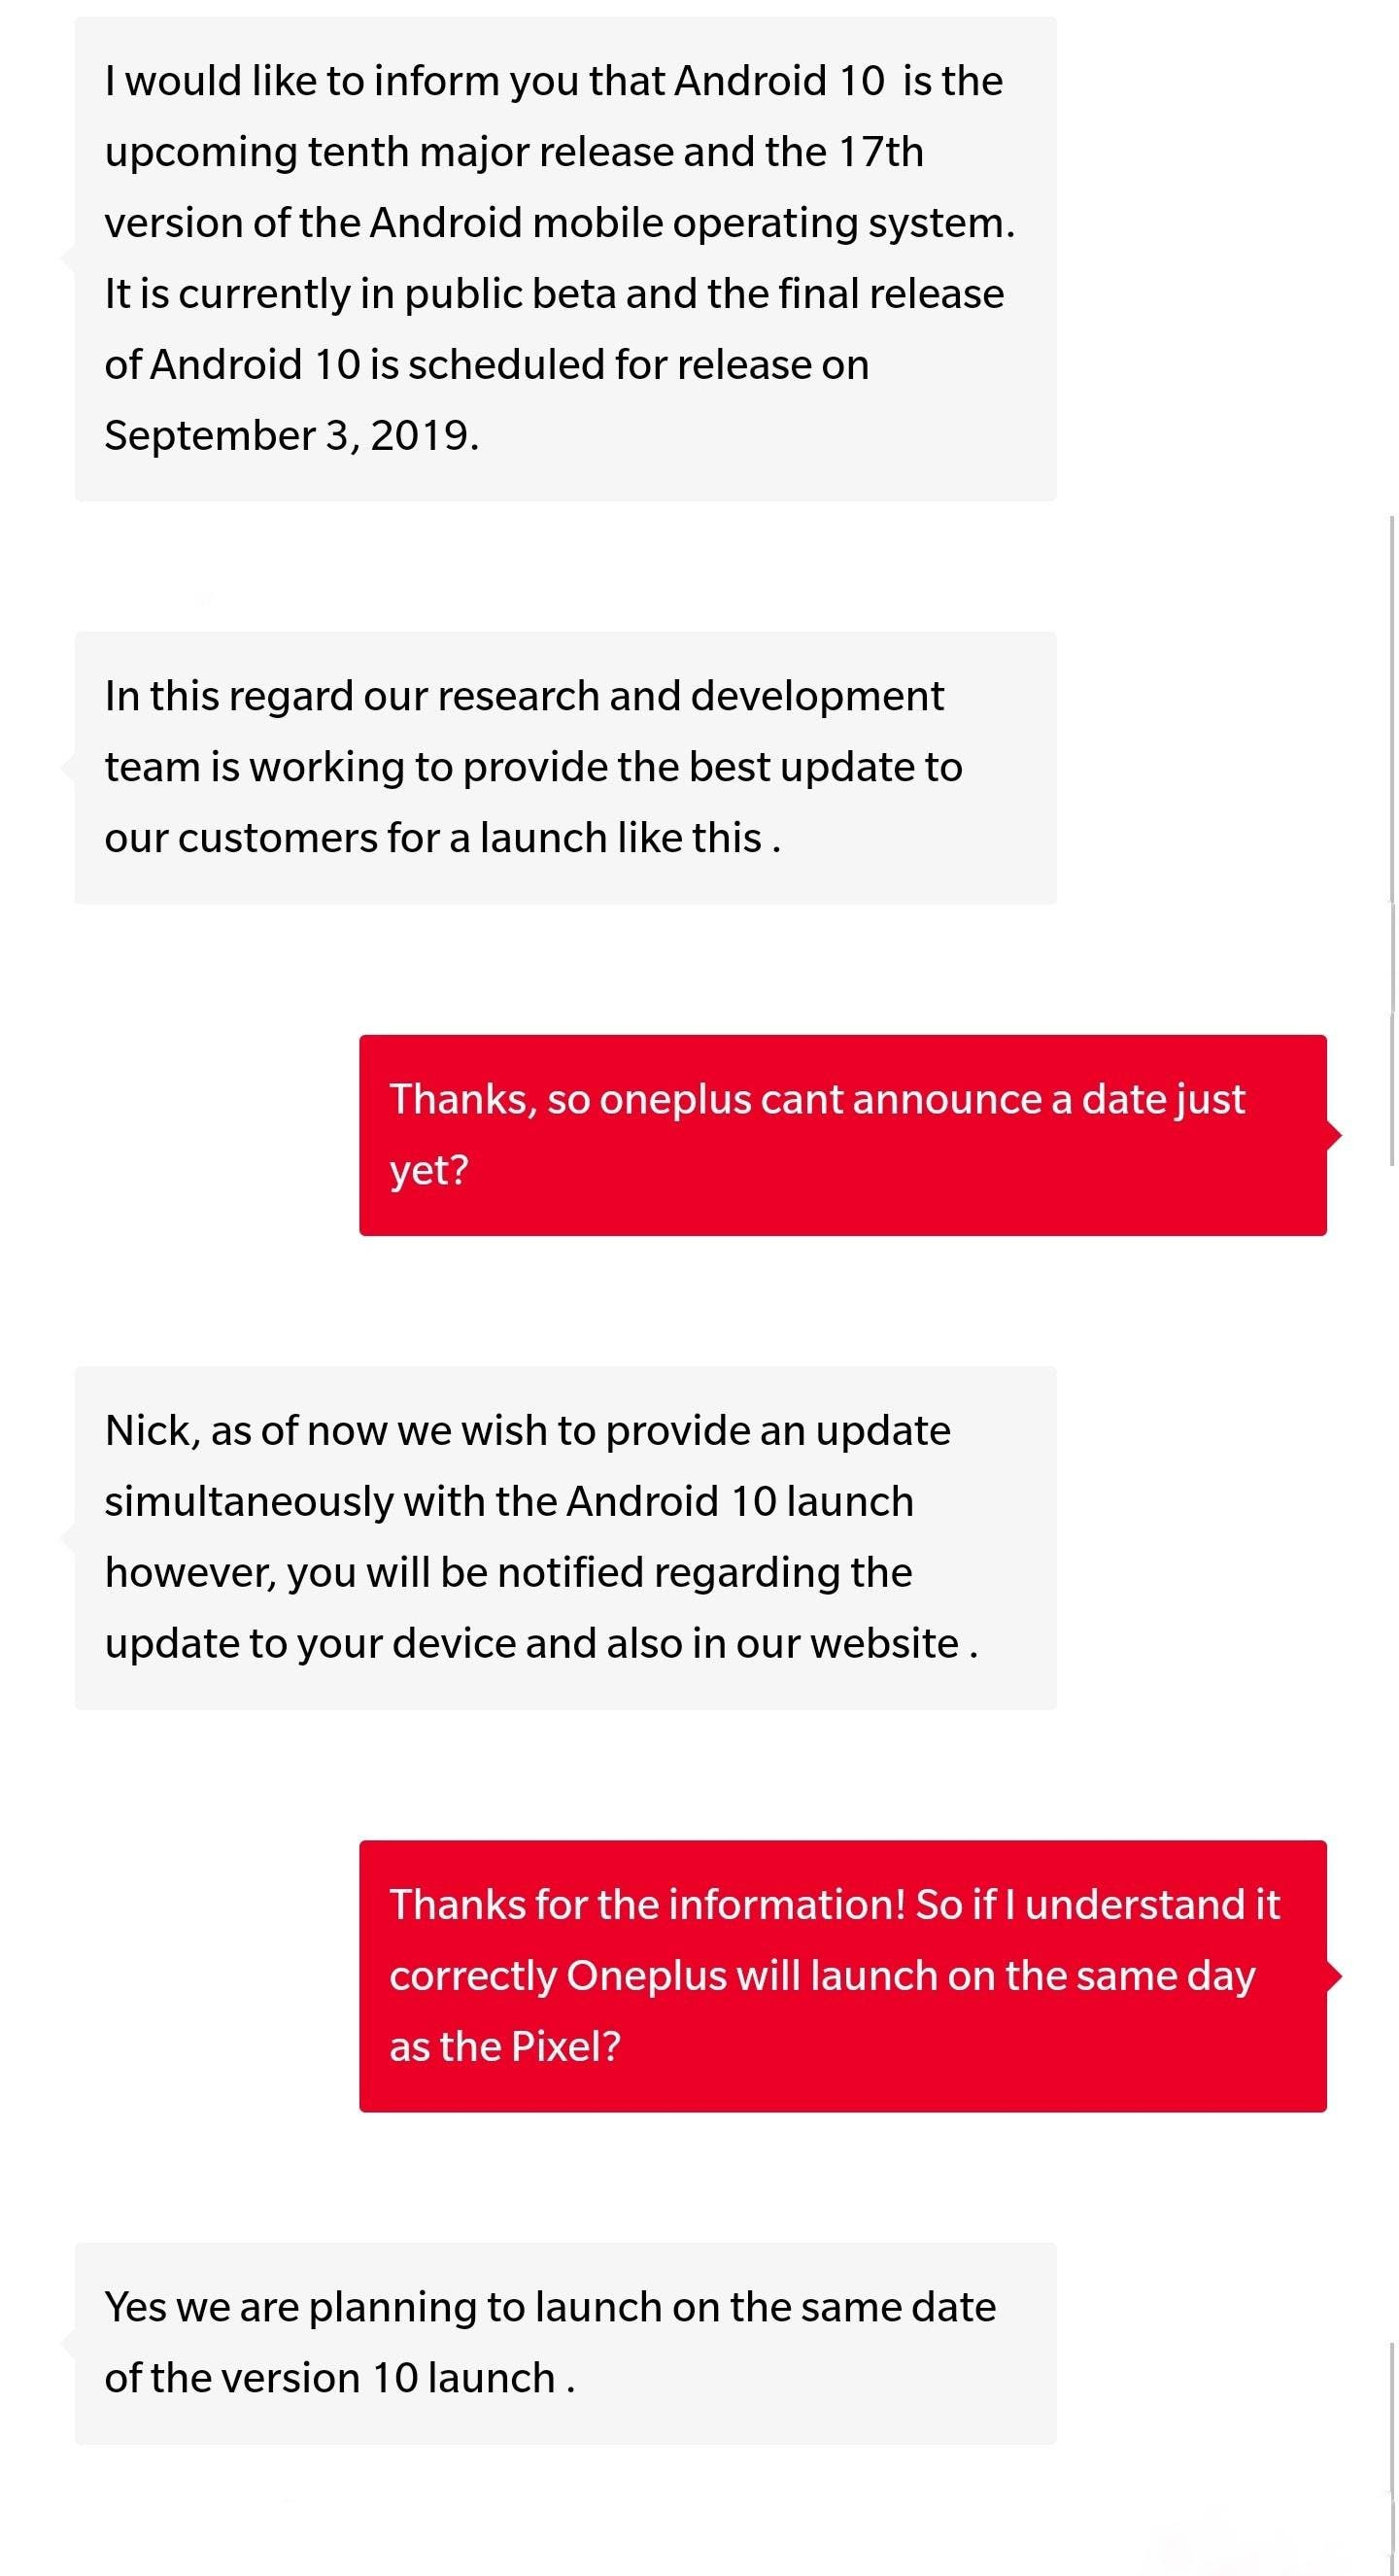 oneplus on android 10